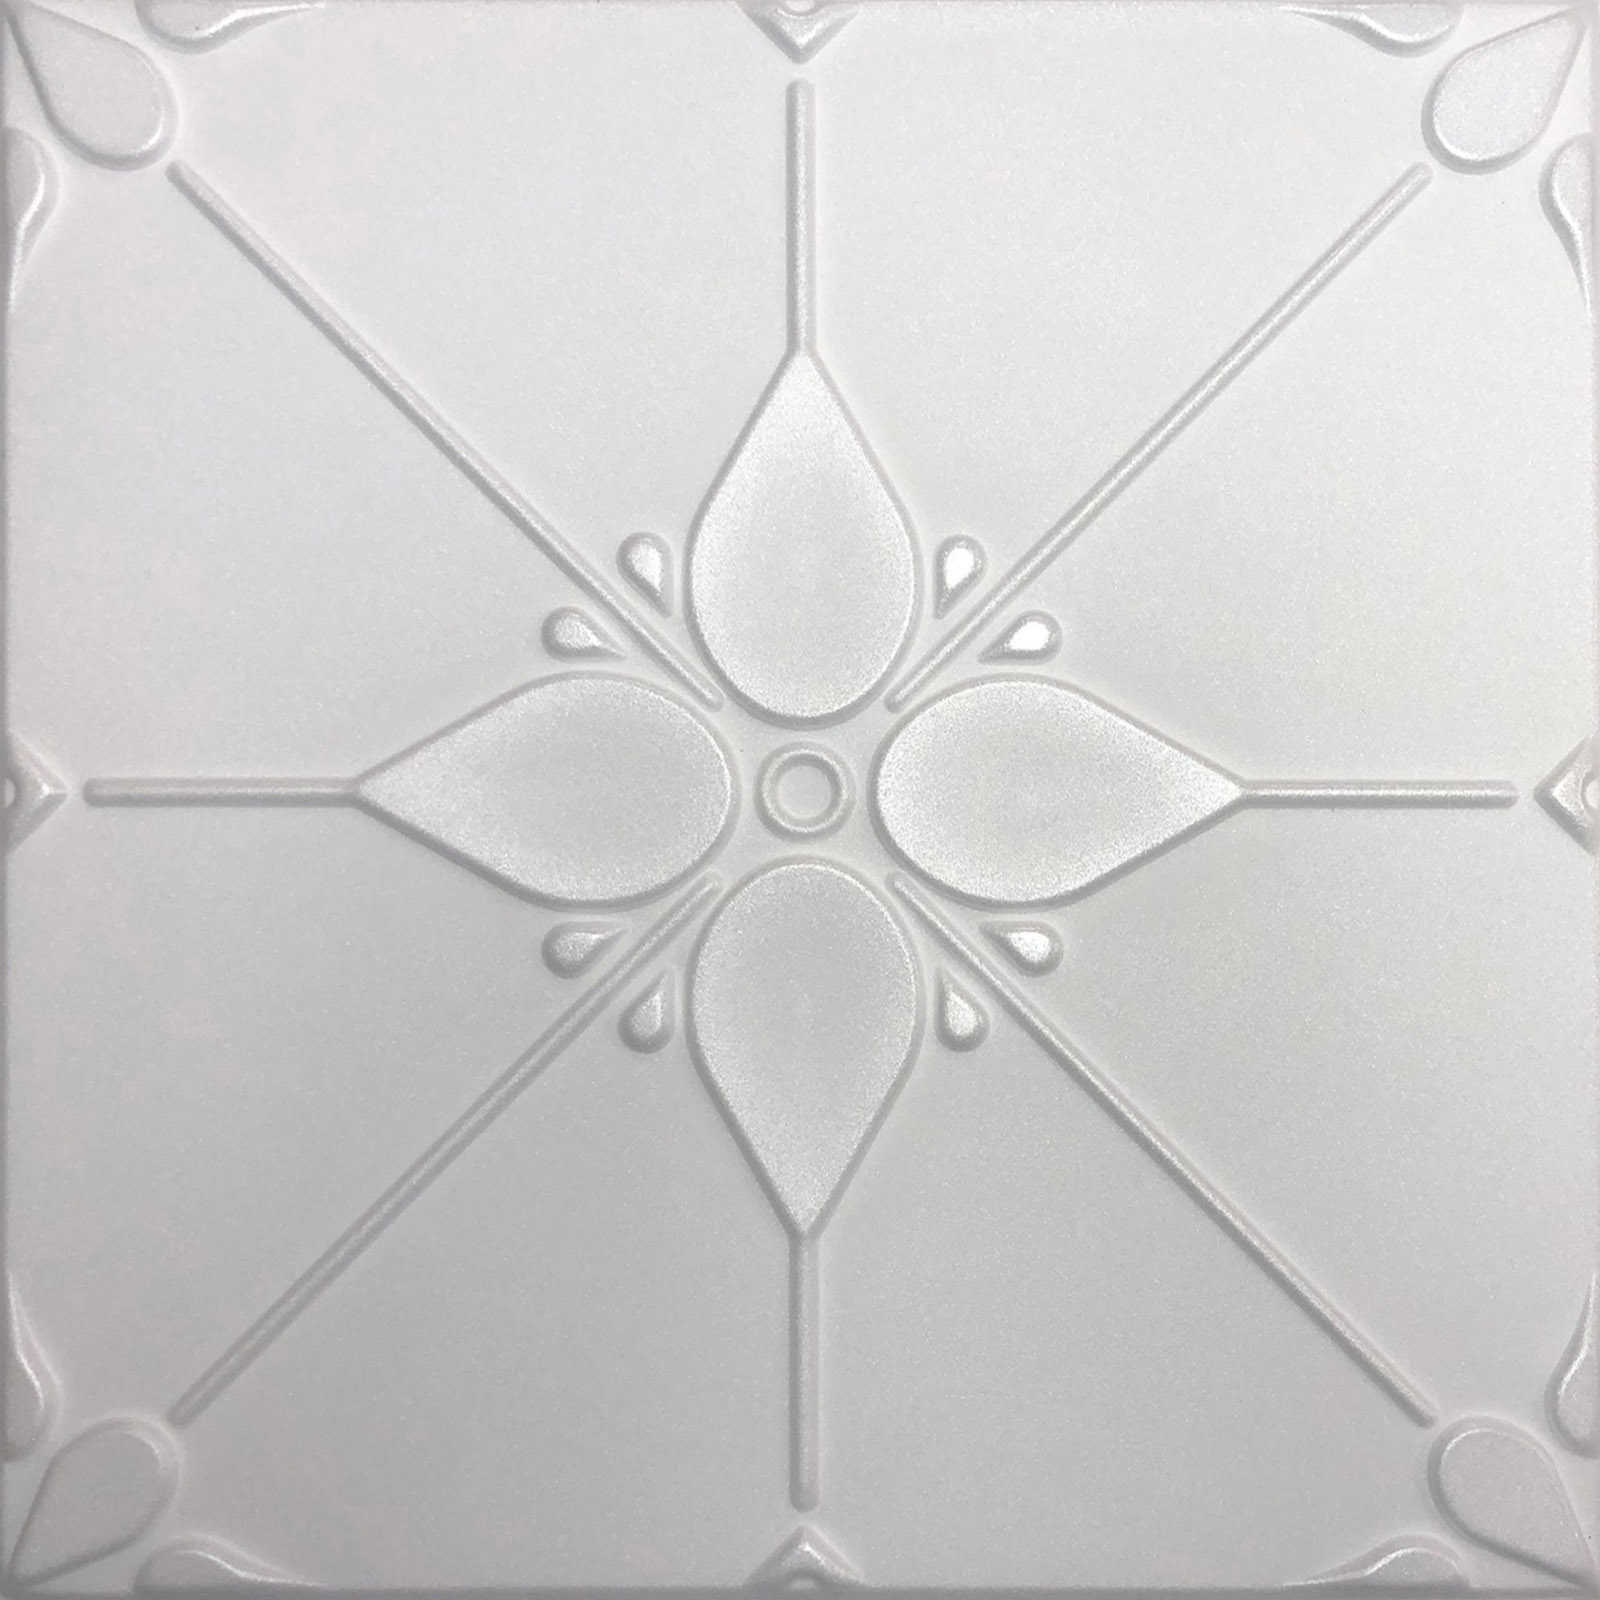 White Styrofoam Ceiling Tile Joy (Package of 8 ceiling tiles)